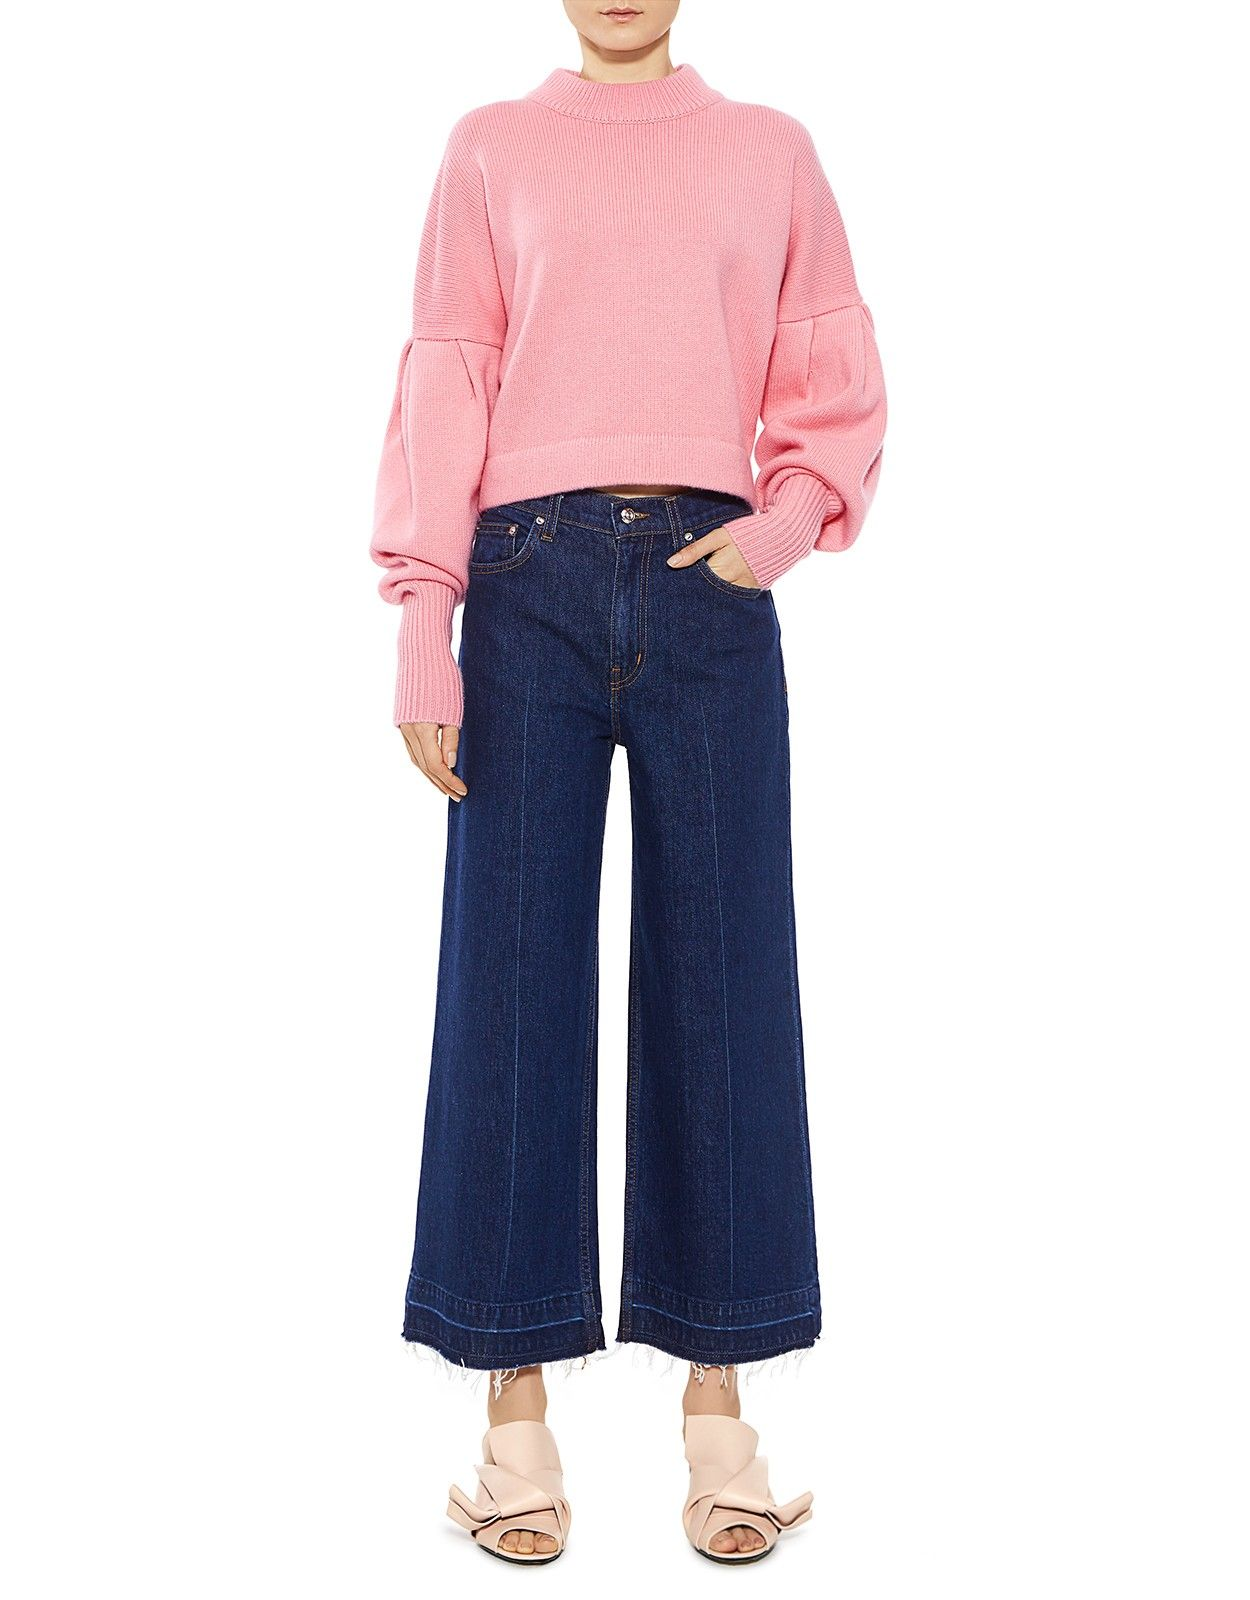 dbc1e4752a2 Tibi | Pleated Sleeves Cashmere Cropped Sweater in Coral Pink | Sweaters -  IFCHIC